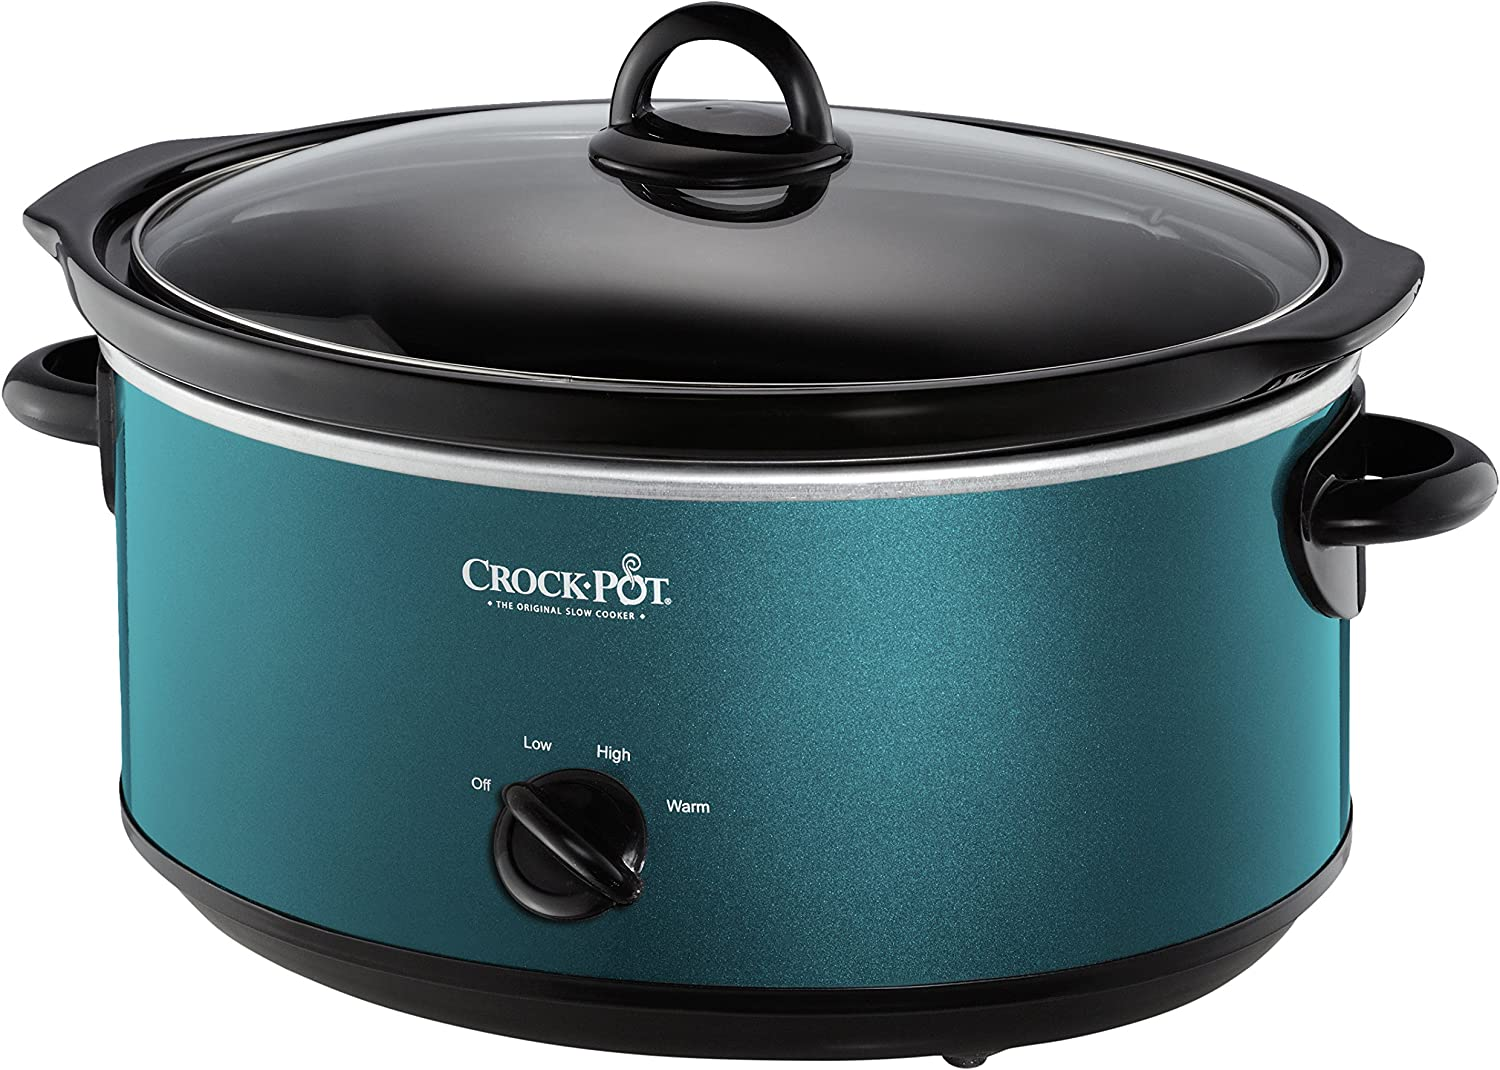 Crockpot SCV700-KT Deisgn to Shine 7QT Slow Cooker, Turquoise